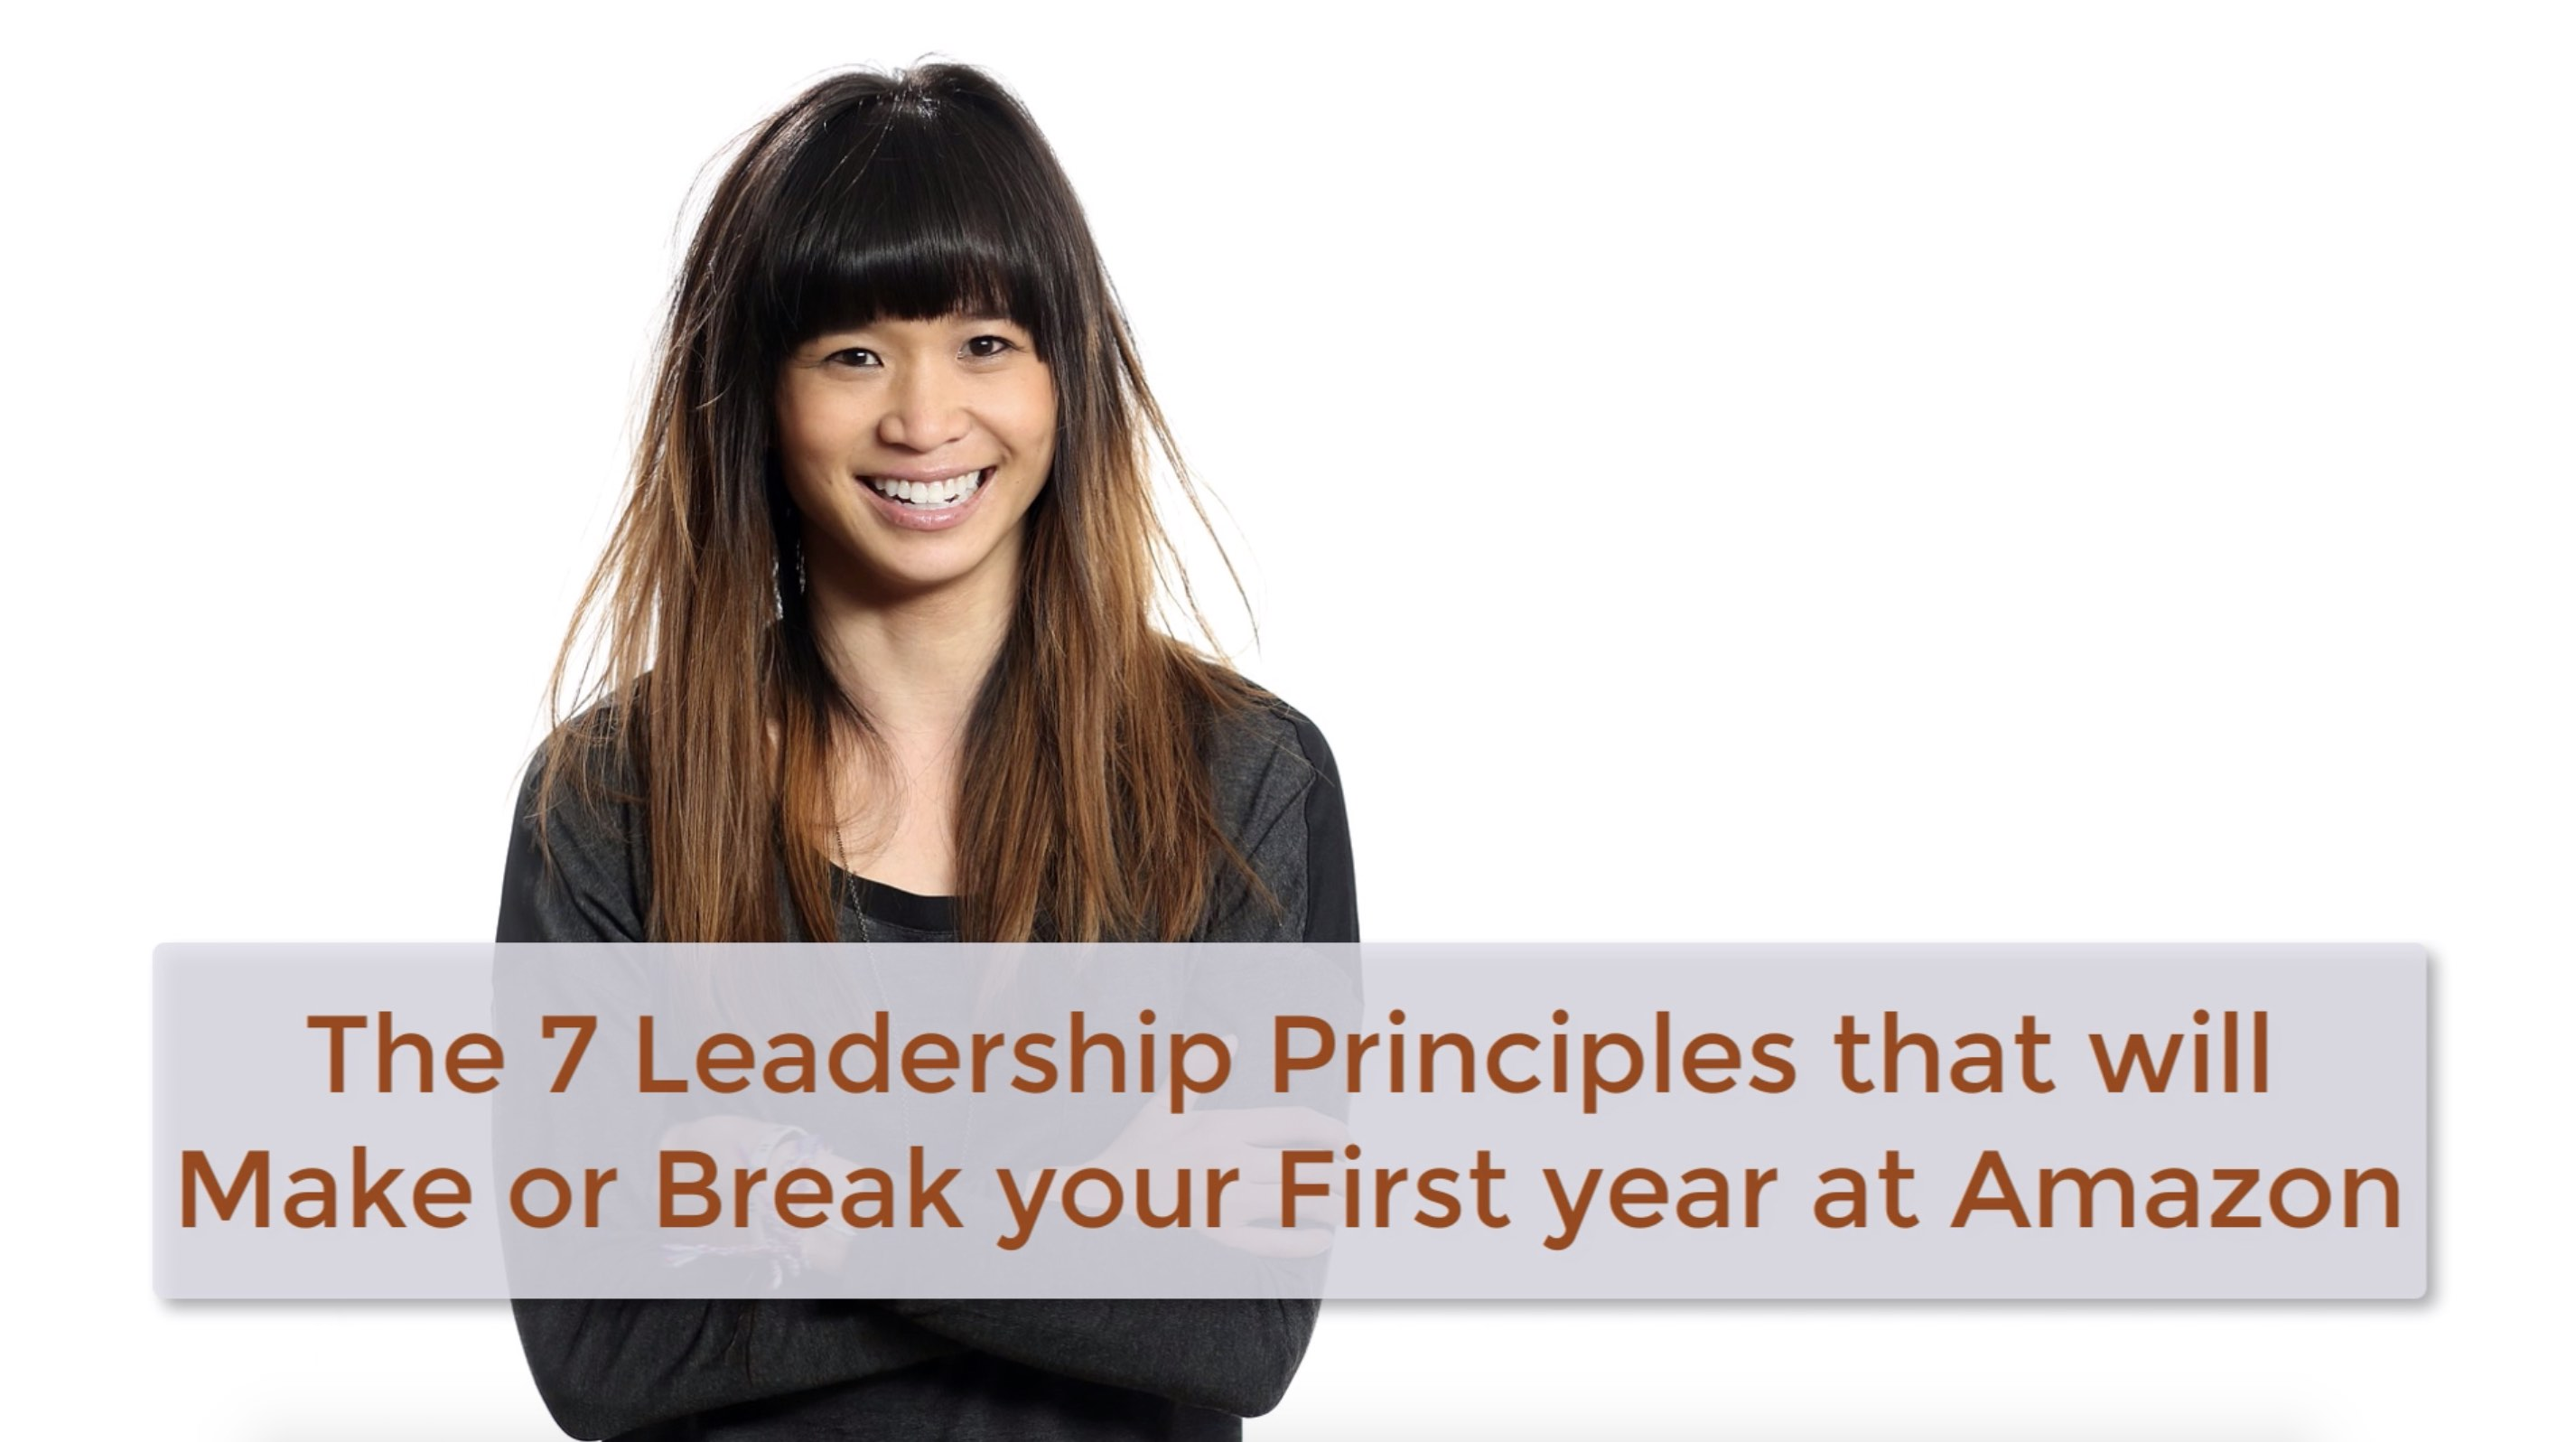 The 7 Leadership Principles that will Make or Break your First year at Amazon